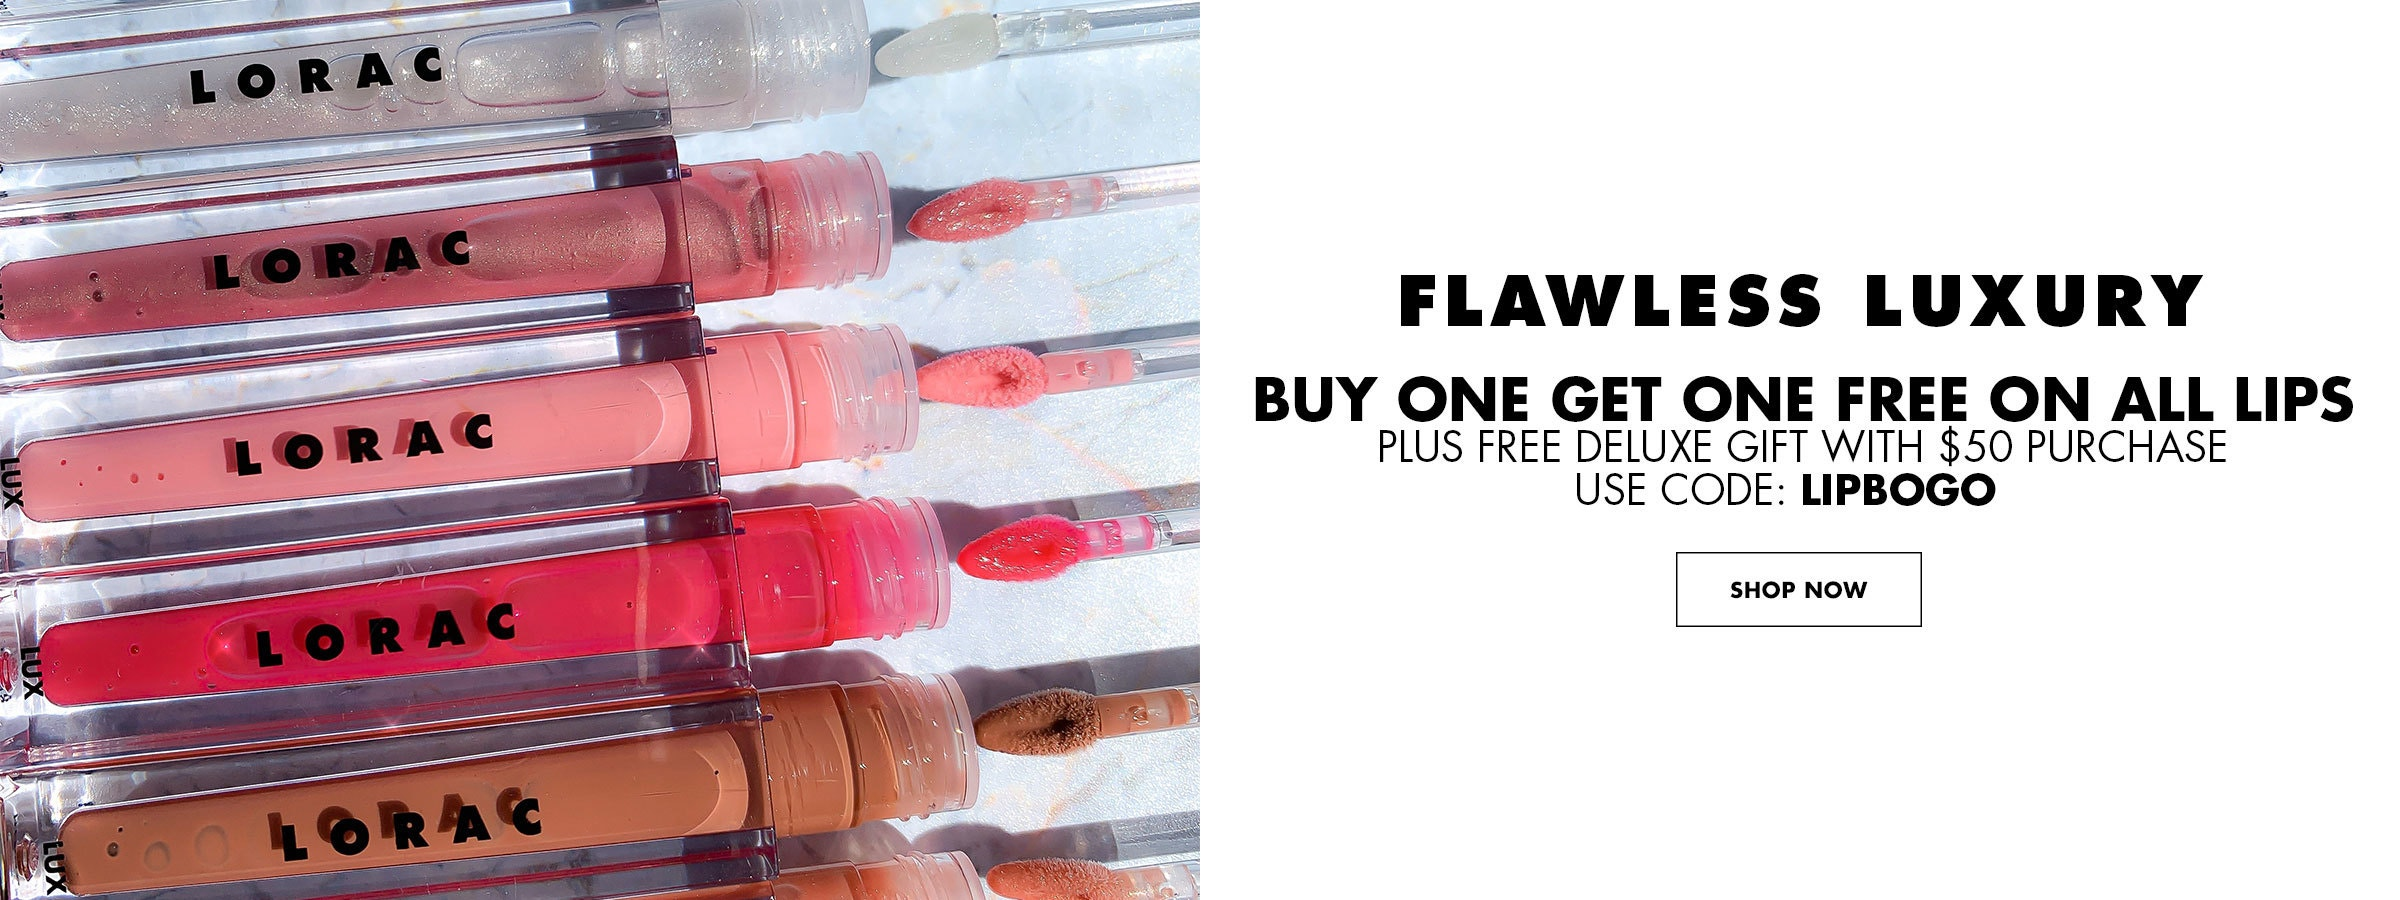 Flawless Luxury | Buy one get one free lips - Use Code: LIPBOGO + Free deluxe gift with $50 purchase | Shop Now | Lorac | Product angled cap removed, with blue background.